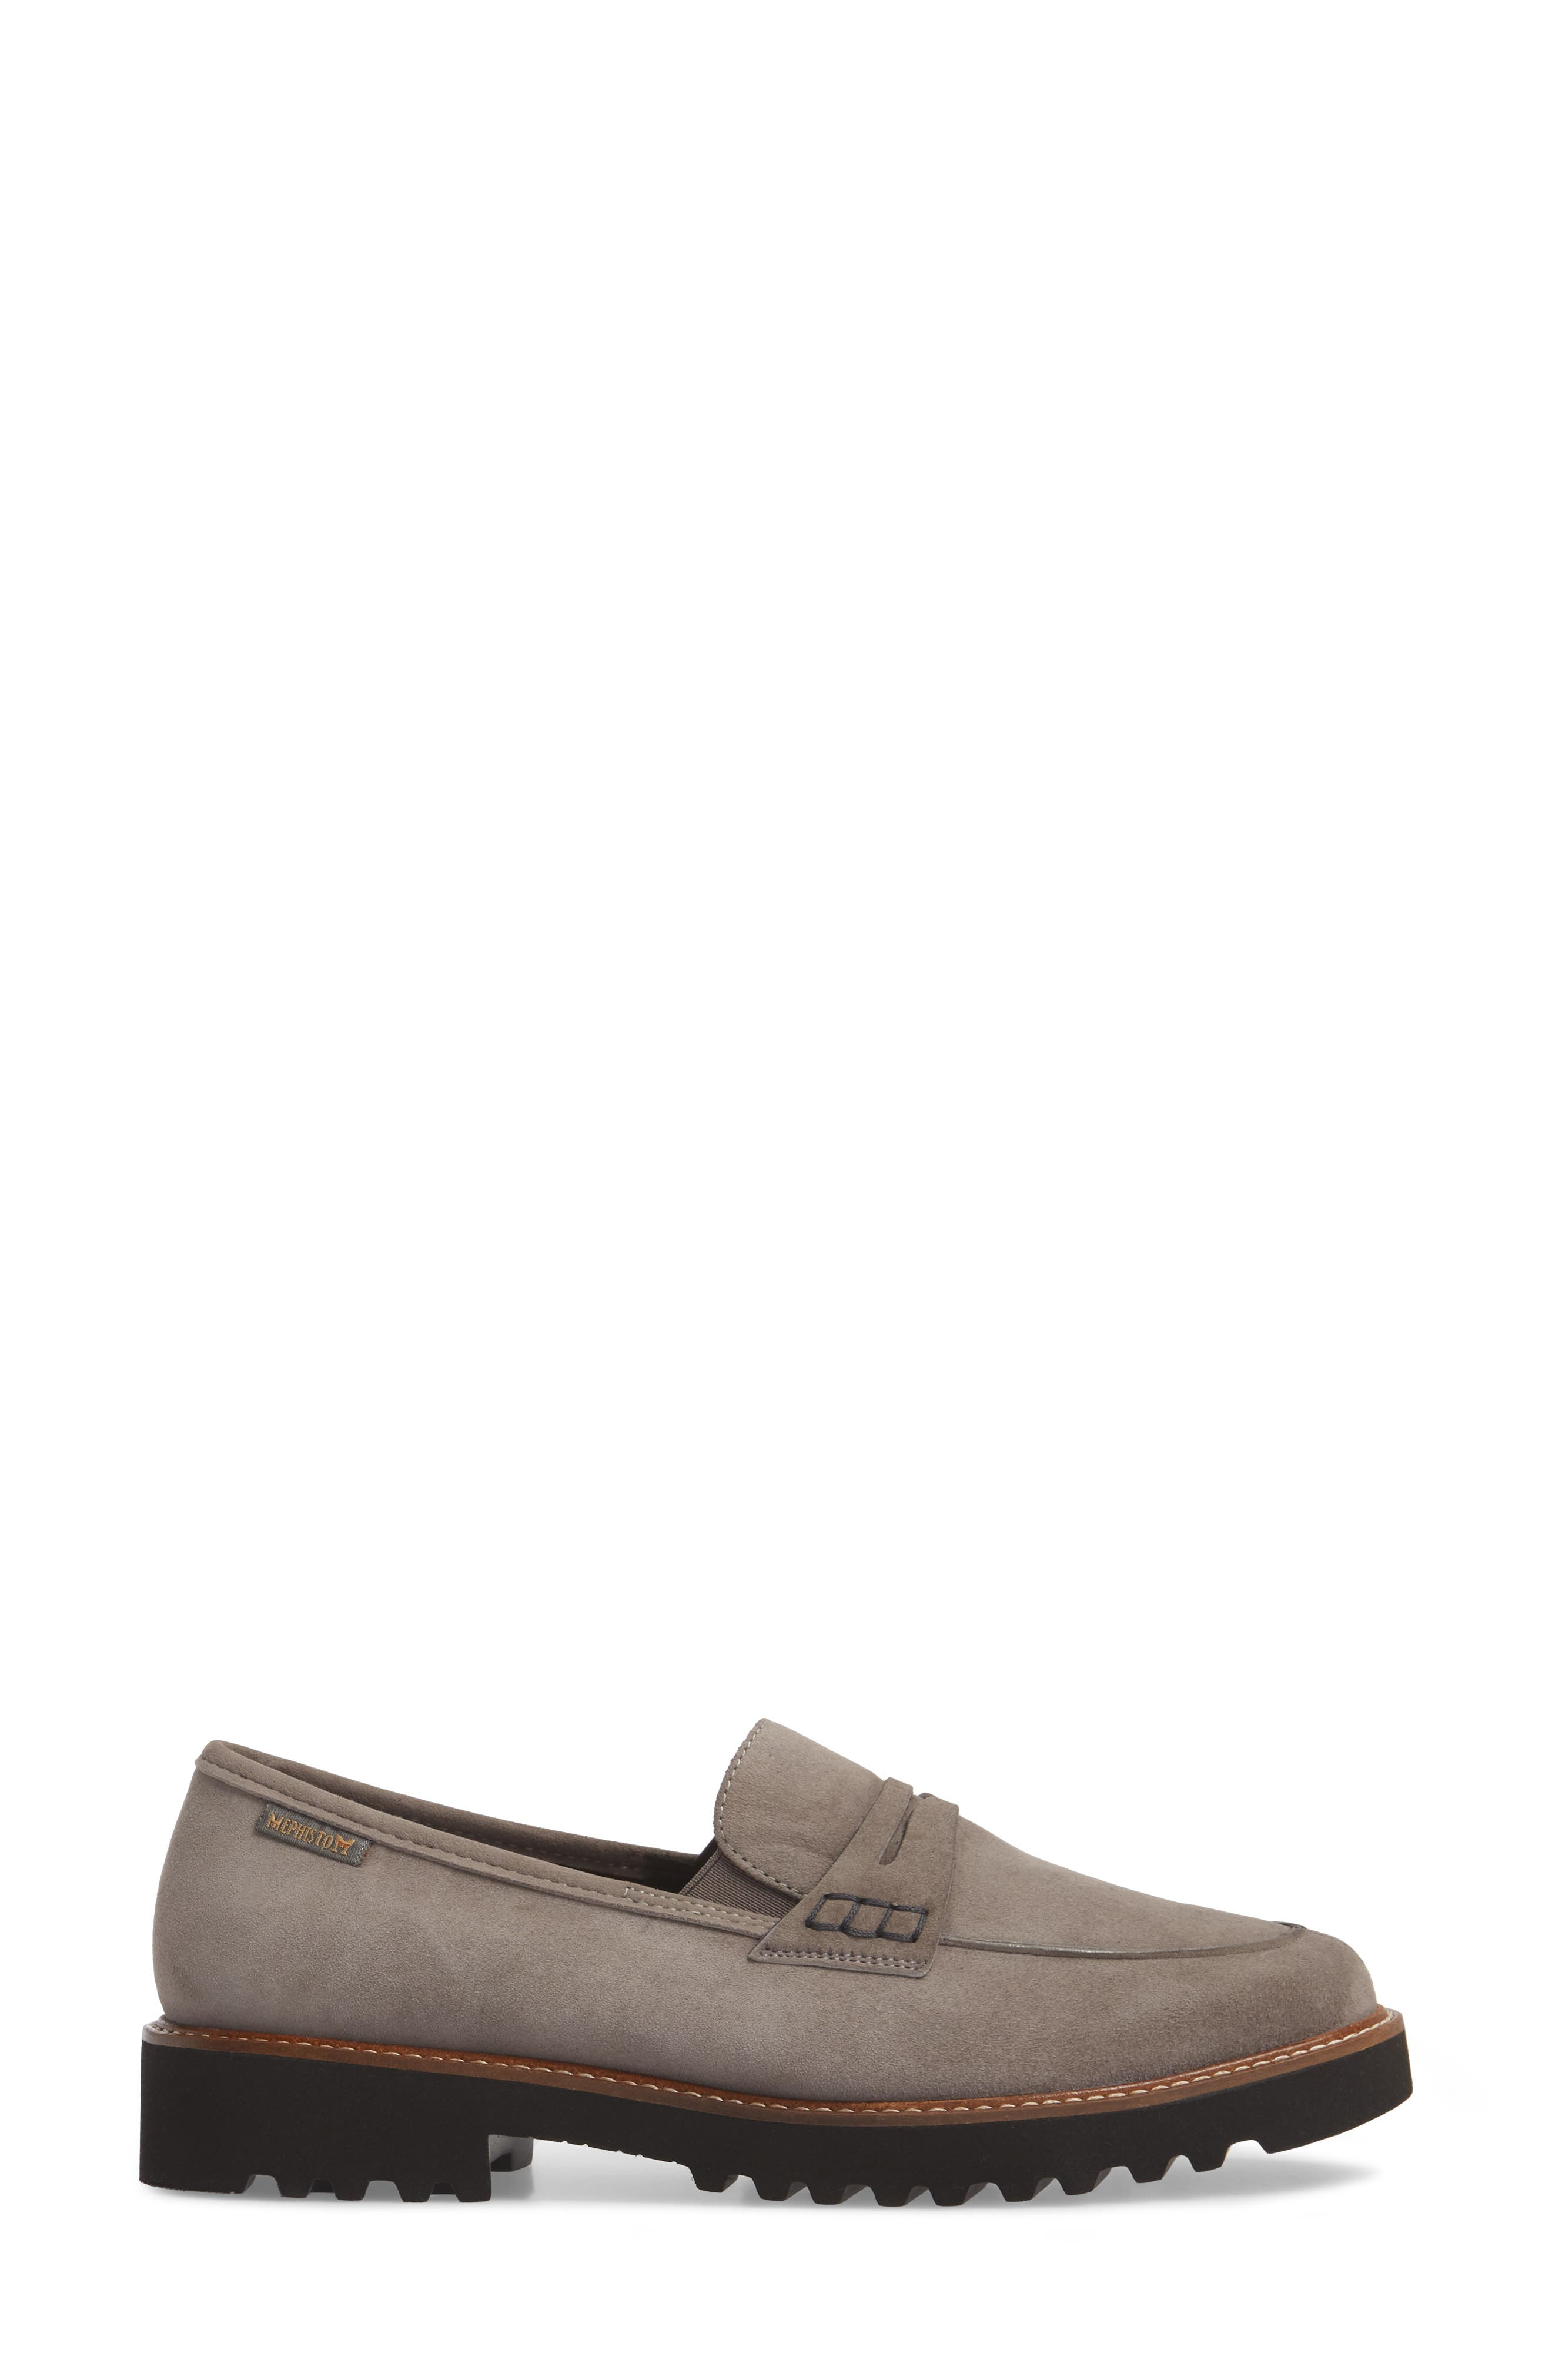 Sidney Penny Loafer,                             Alternate thumbnail 3, color,                             Grey Suede